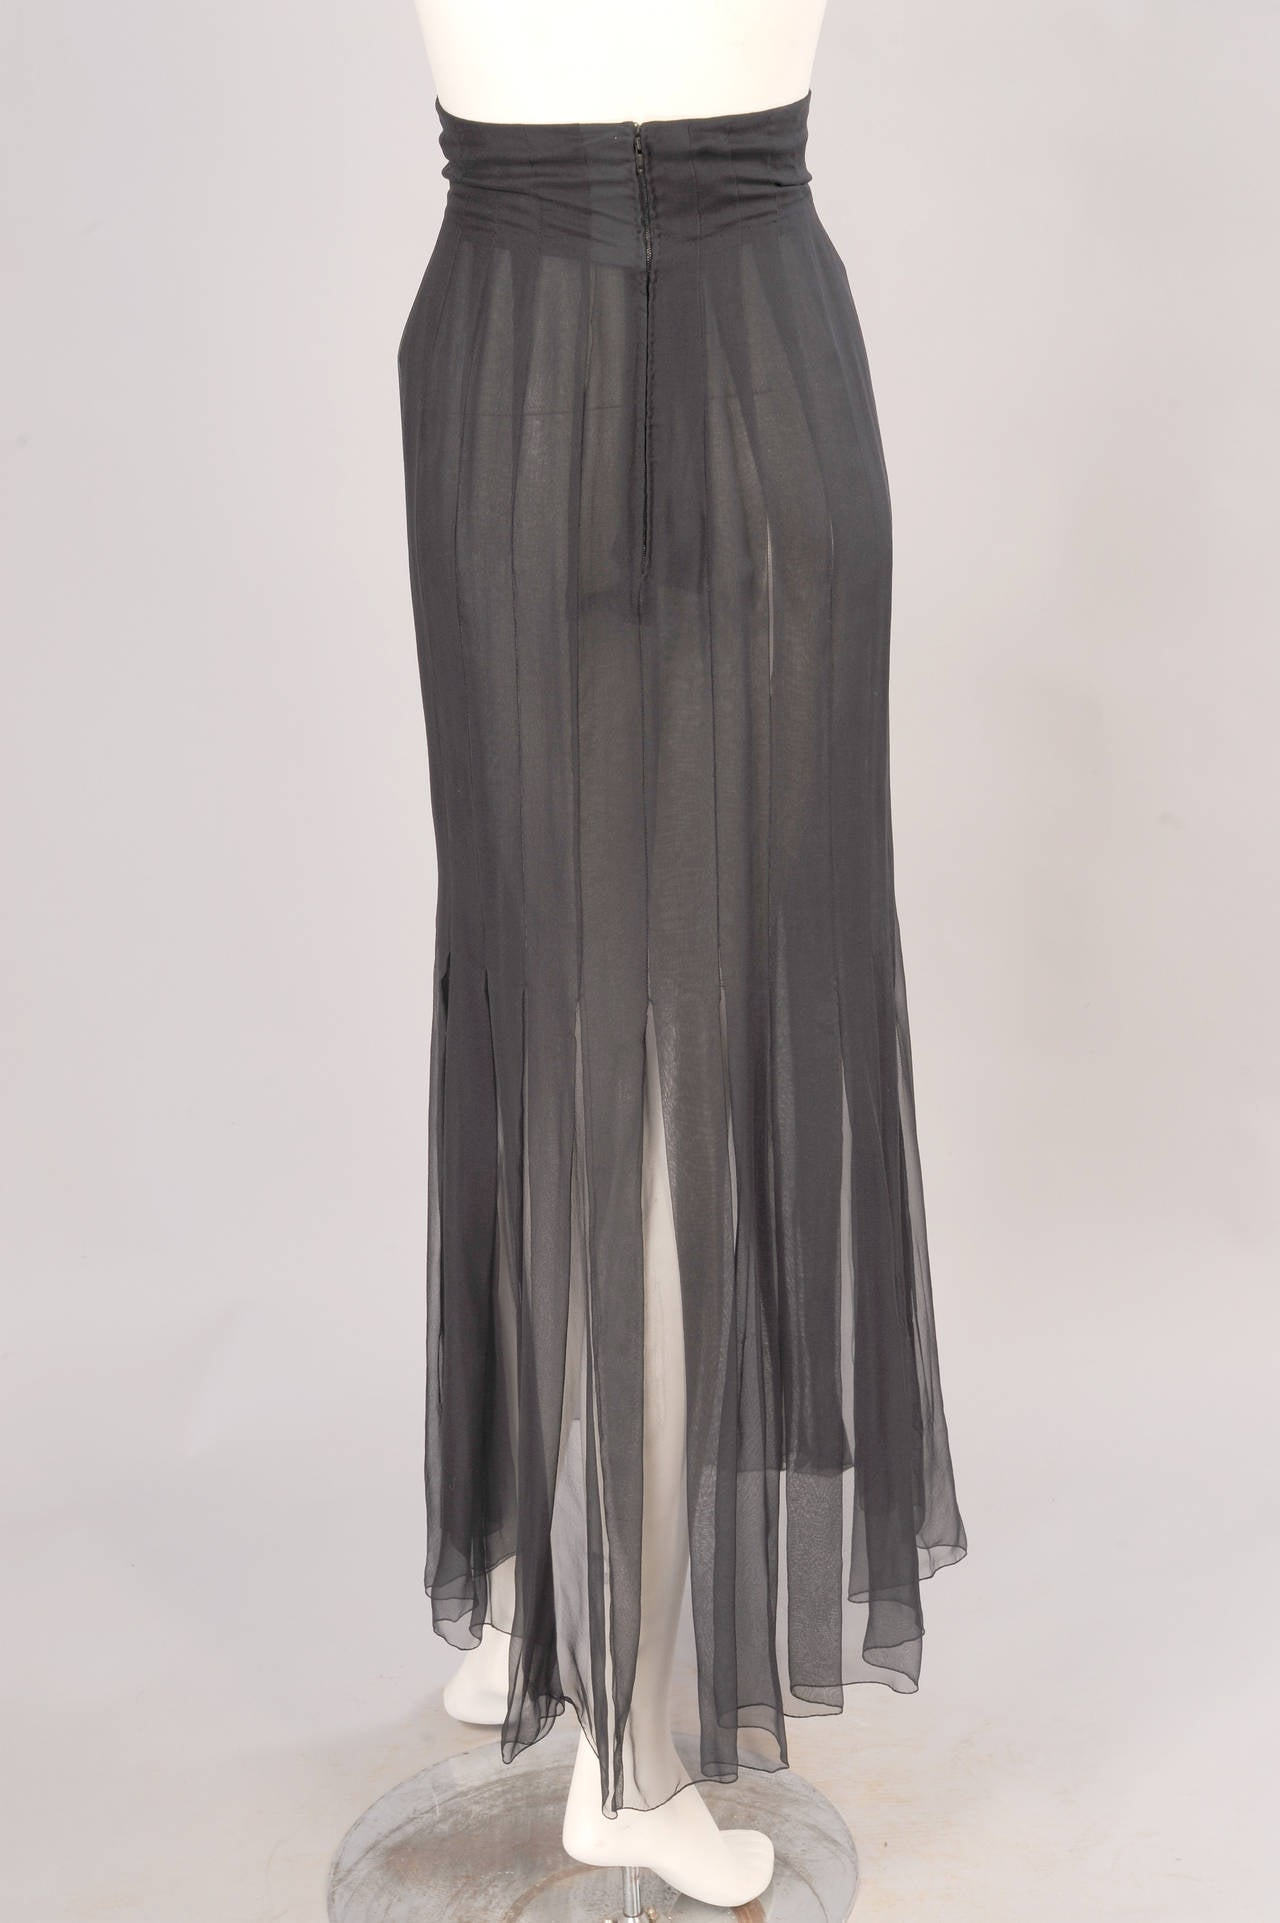 Chanel haute couture black silk chiffon skirt for sale at for Haute couture sale